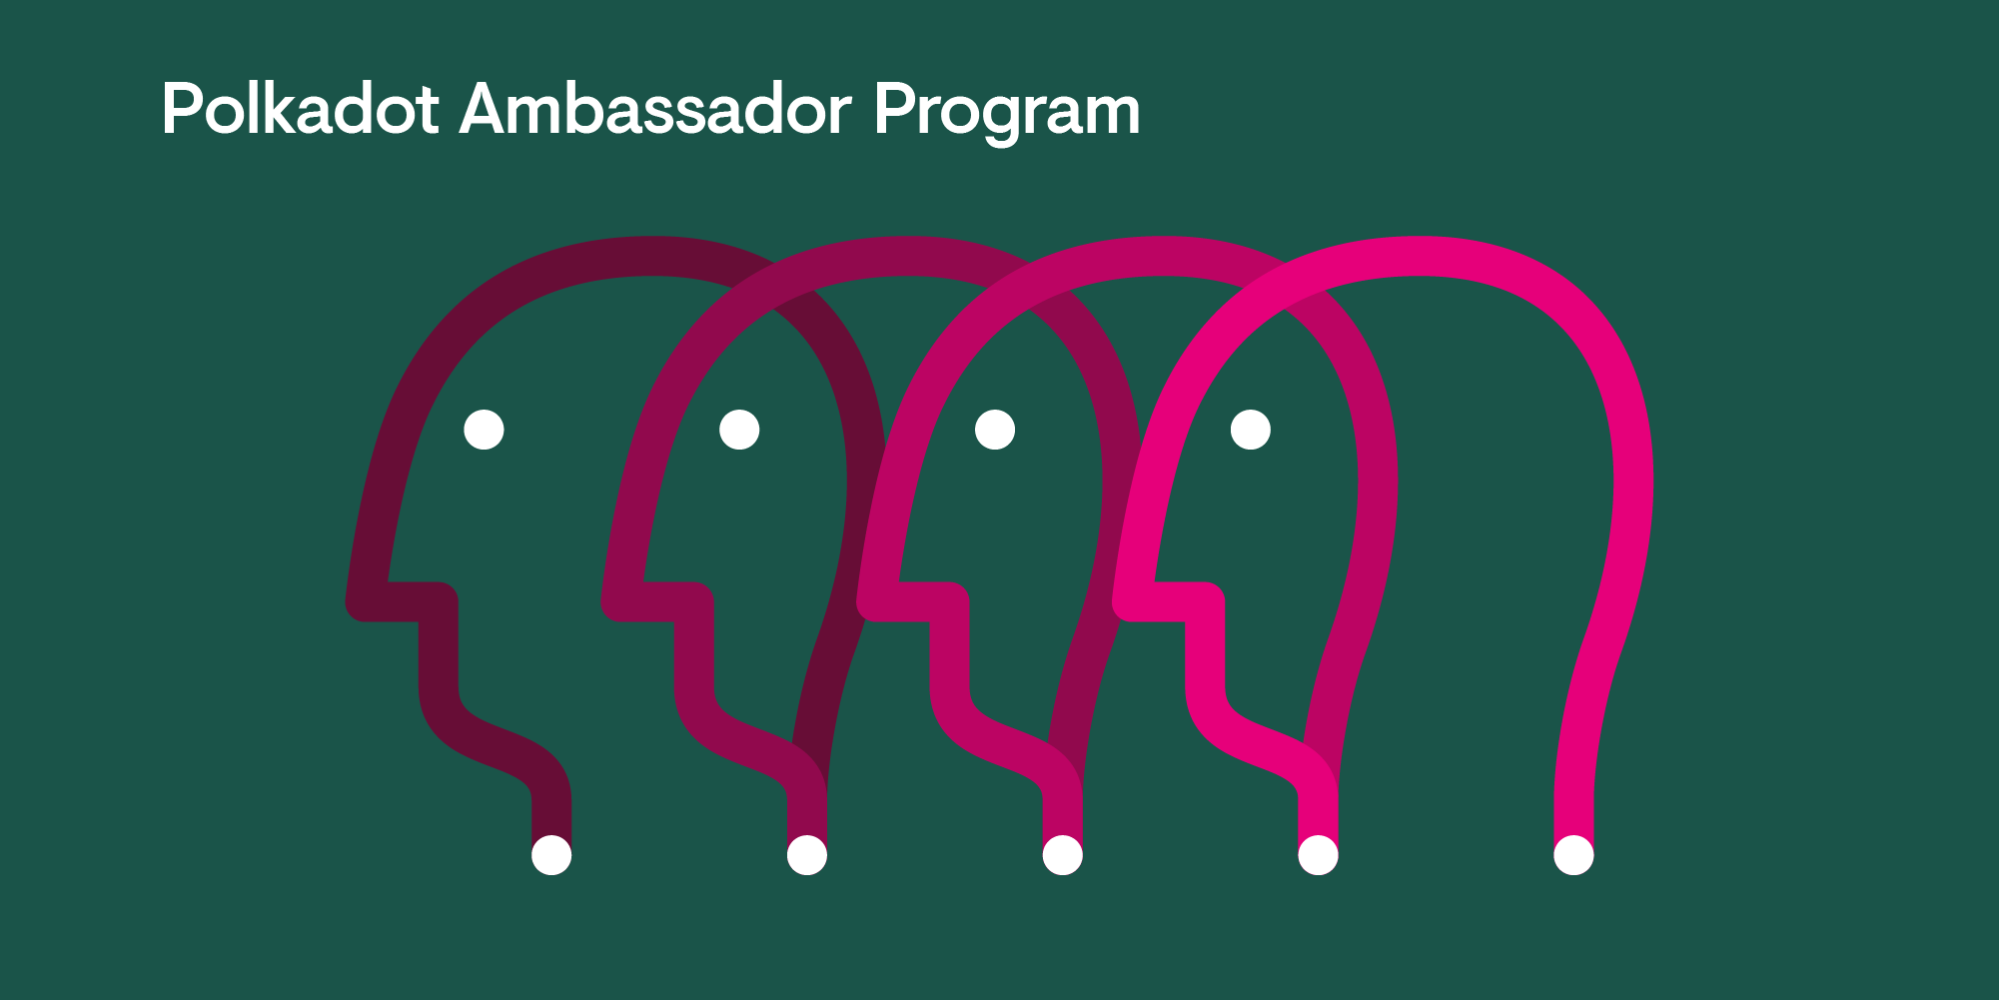 Announcing the Launch of the Polkadot Ambassador Program